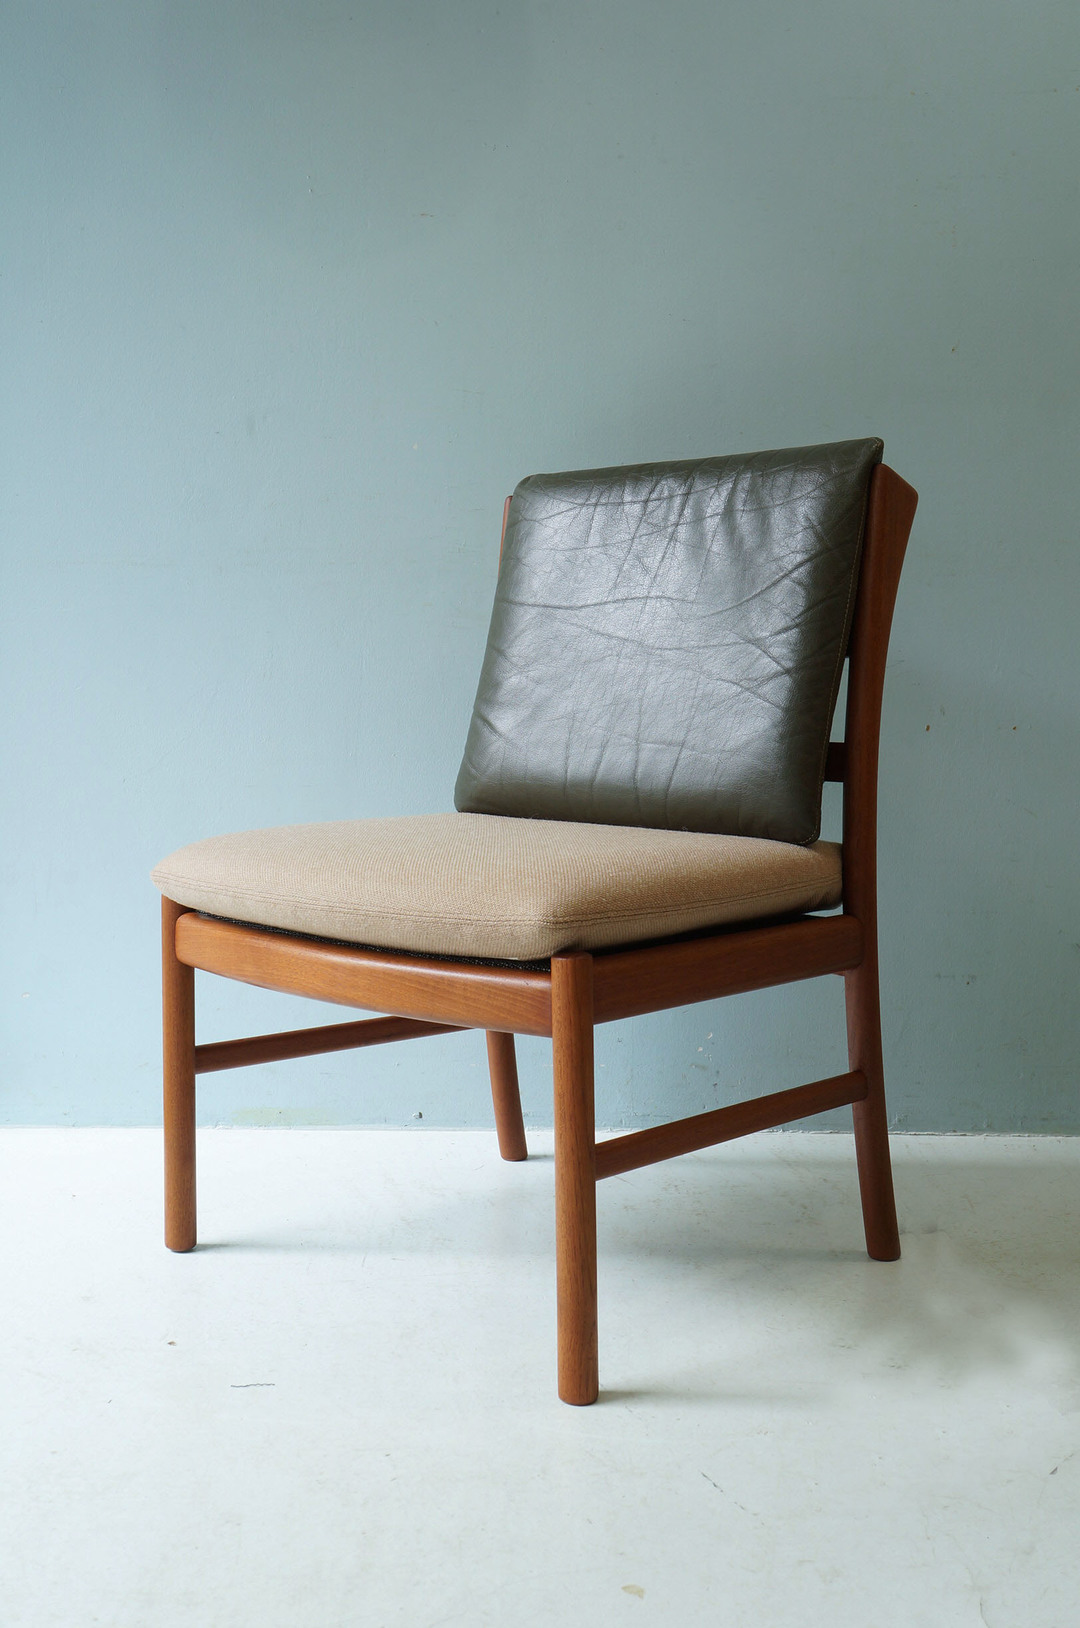 Japanese Vintage HITA CRAFTS Dining Chair Armless/日田工芸 ダイニングチェア アームレス ジャパンヴィンテージ チーク材 2